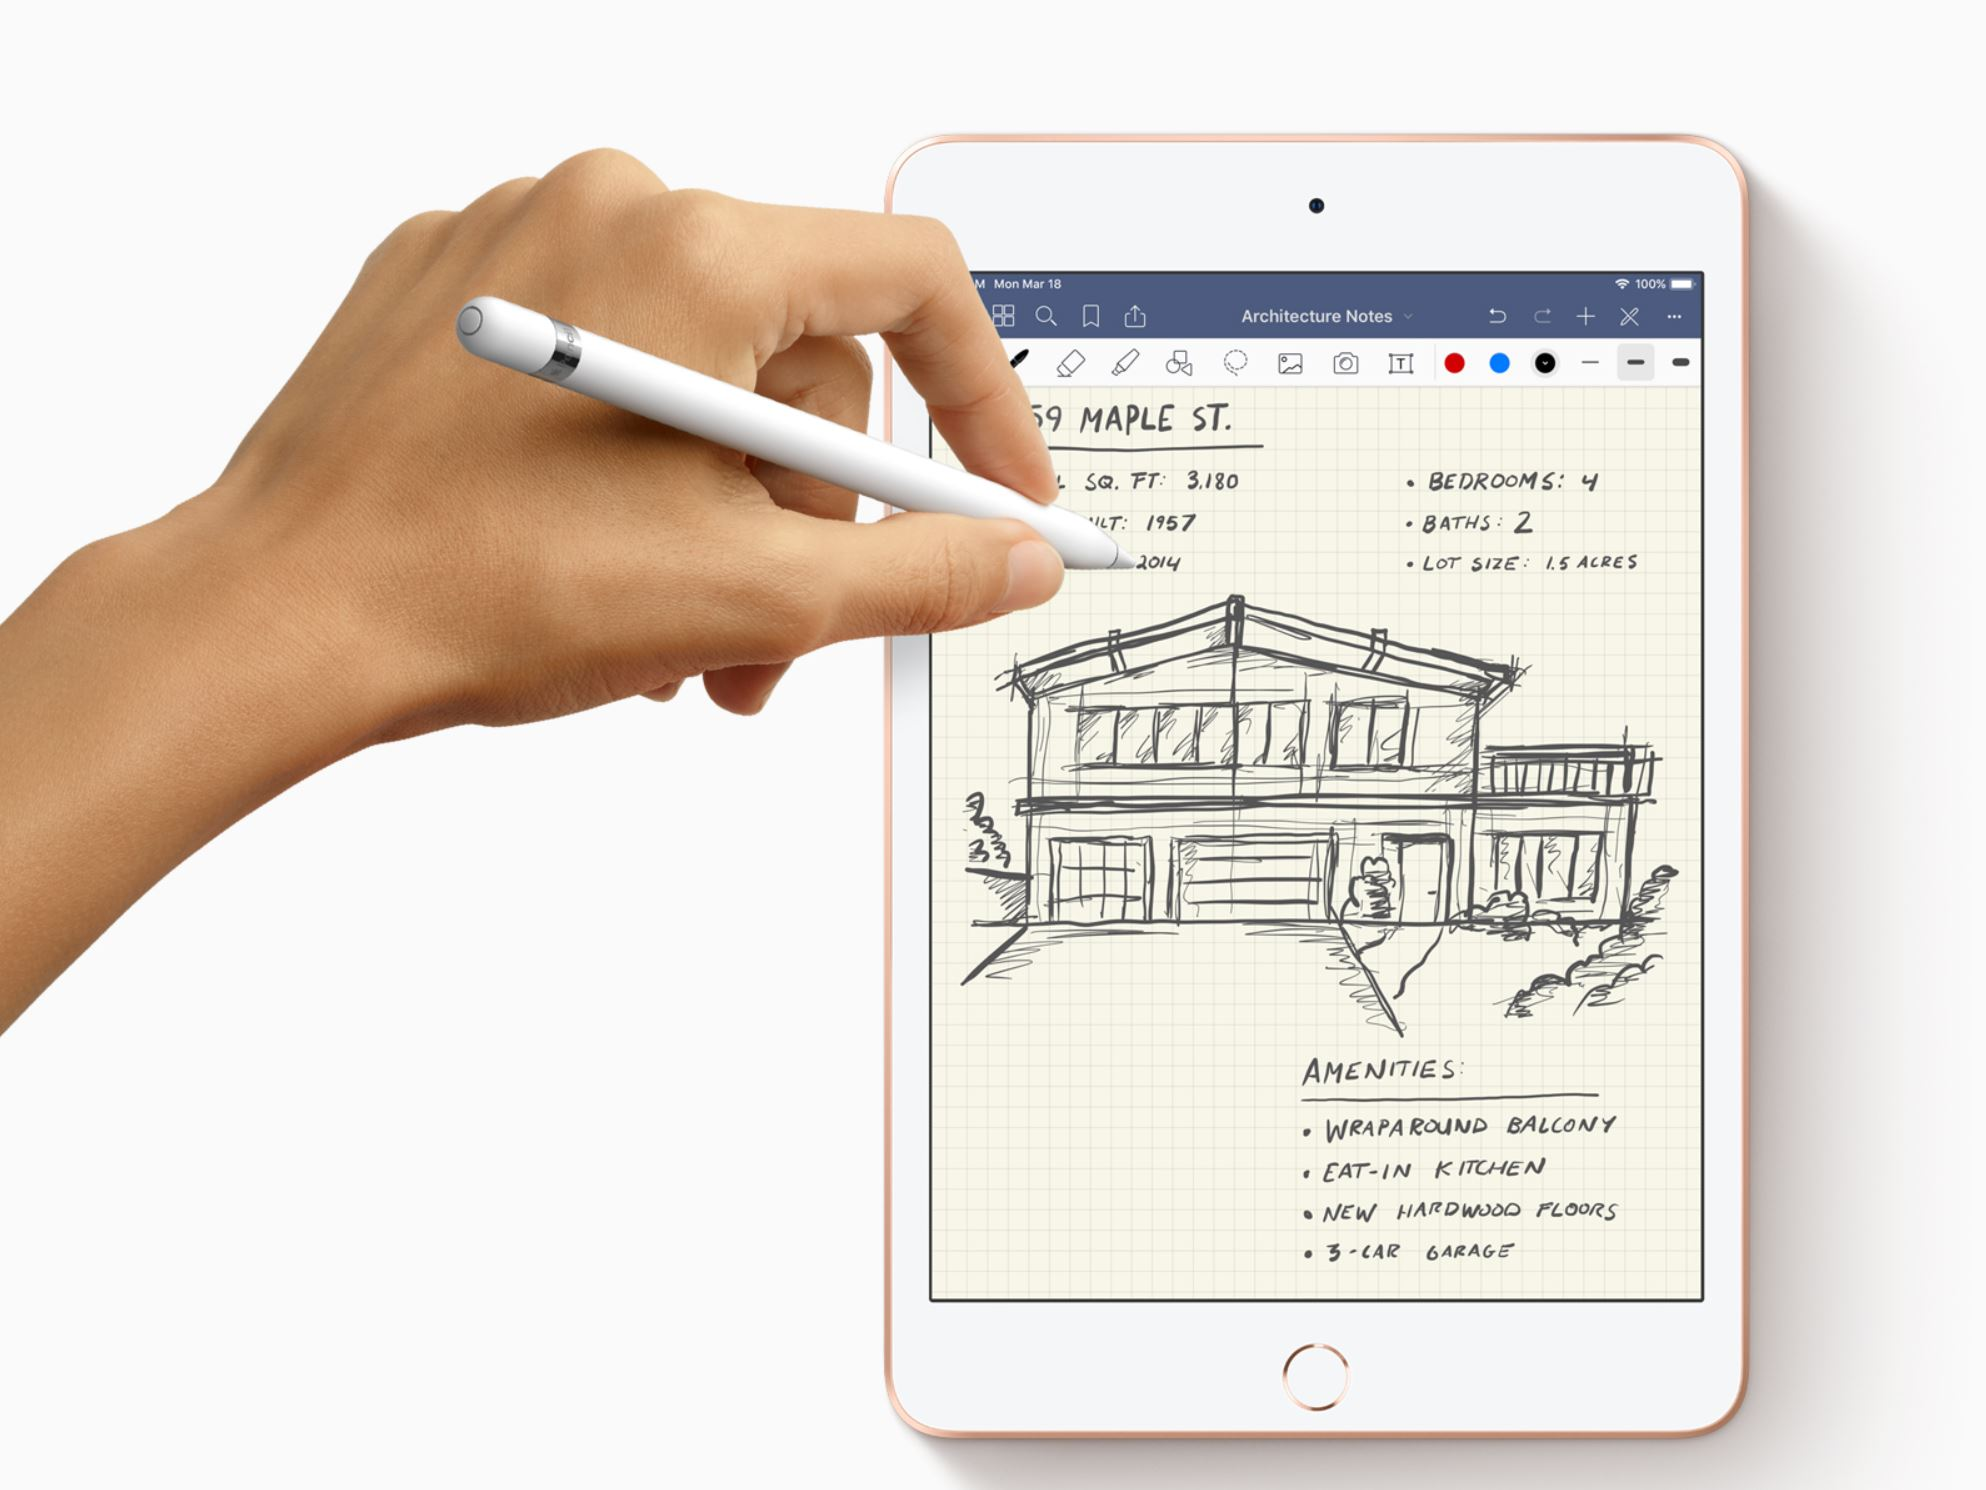 Apple brings back iPad Air, revamps iPad Mini